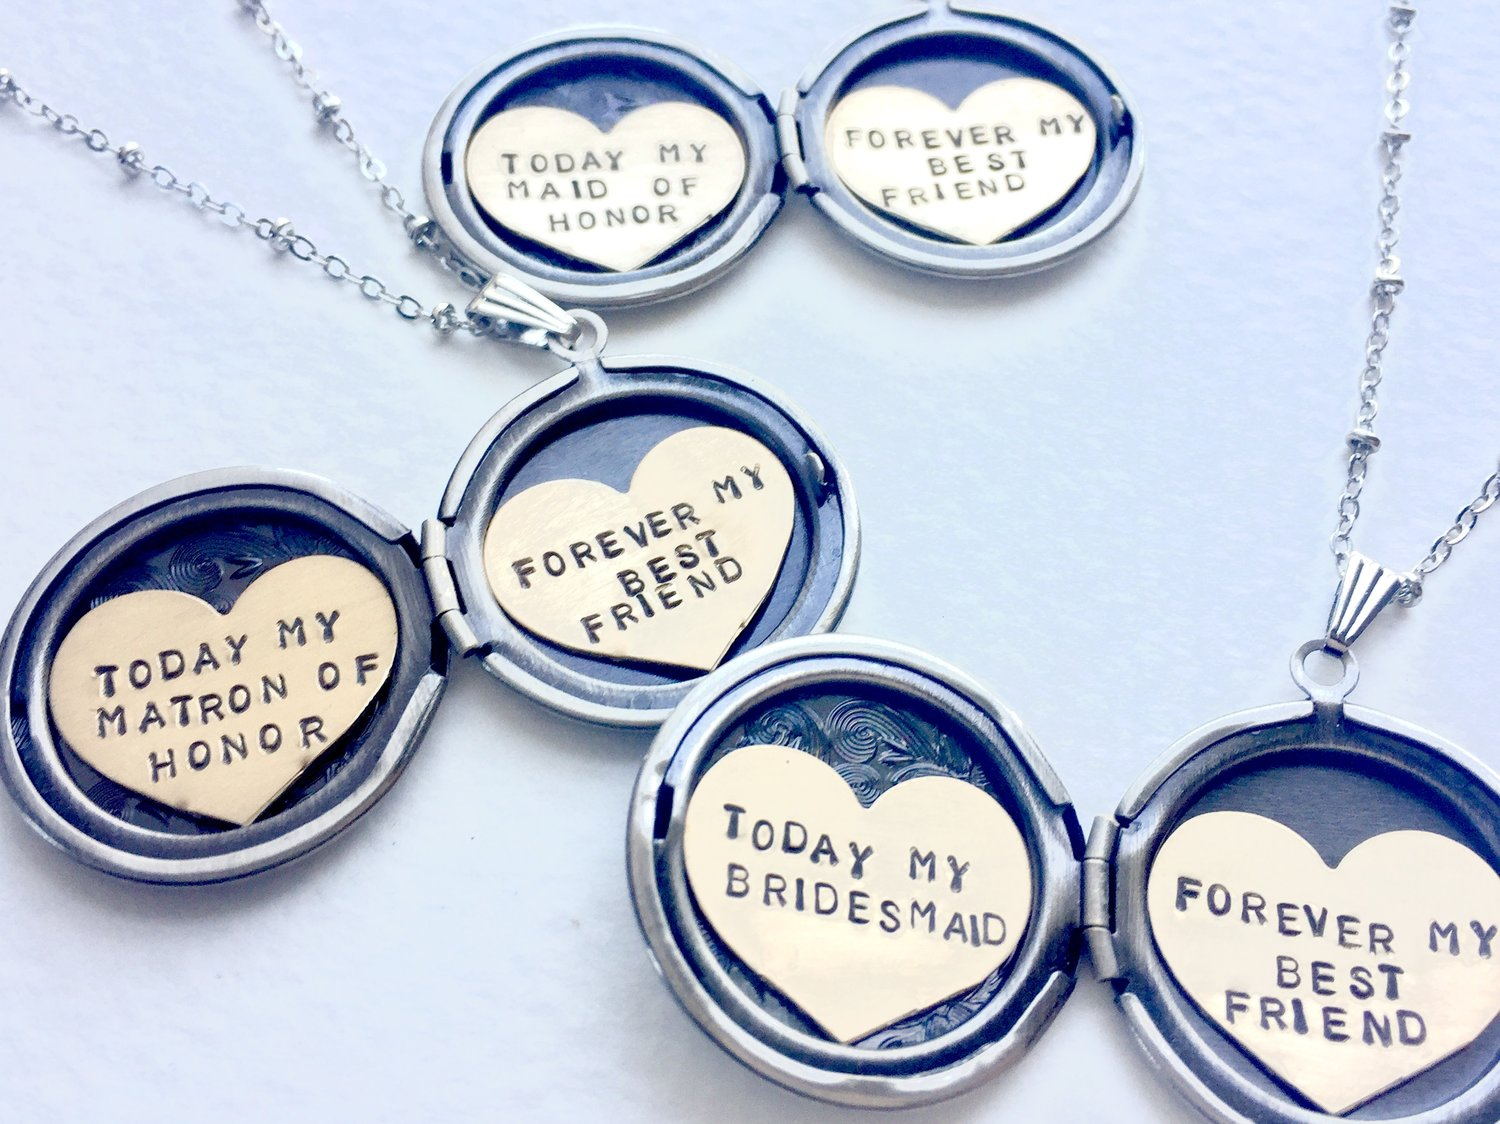 aunts lockets charm friend for love a products gift s floating set etched tc aunt hugs gold me necklace unique jewelry tell locket